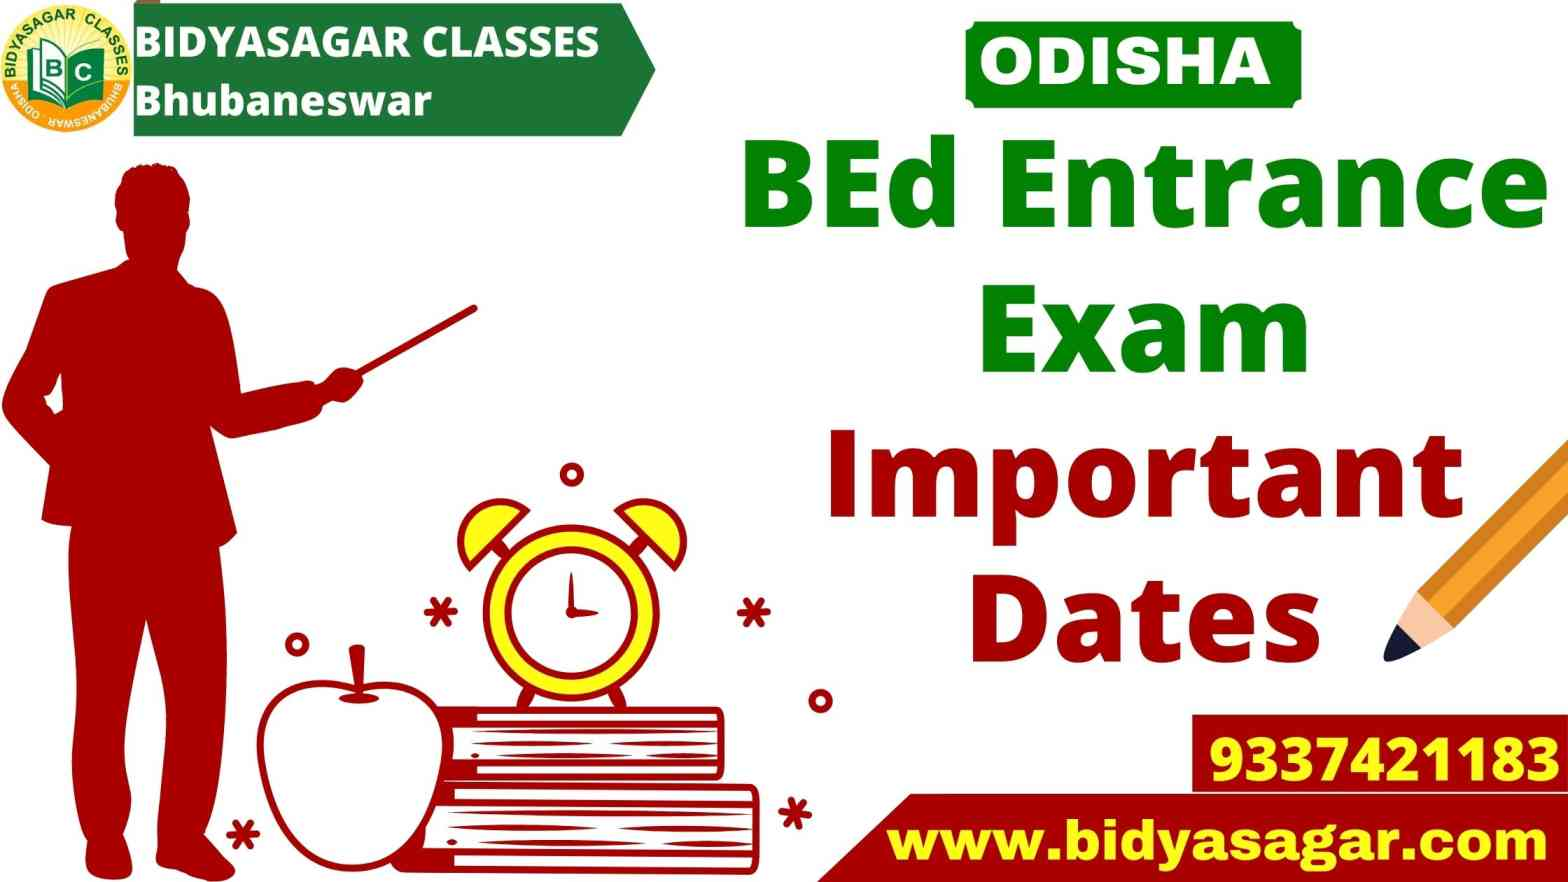 Odisha State B.Ed Entrance Exam 2021 Important Dates